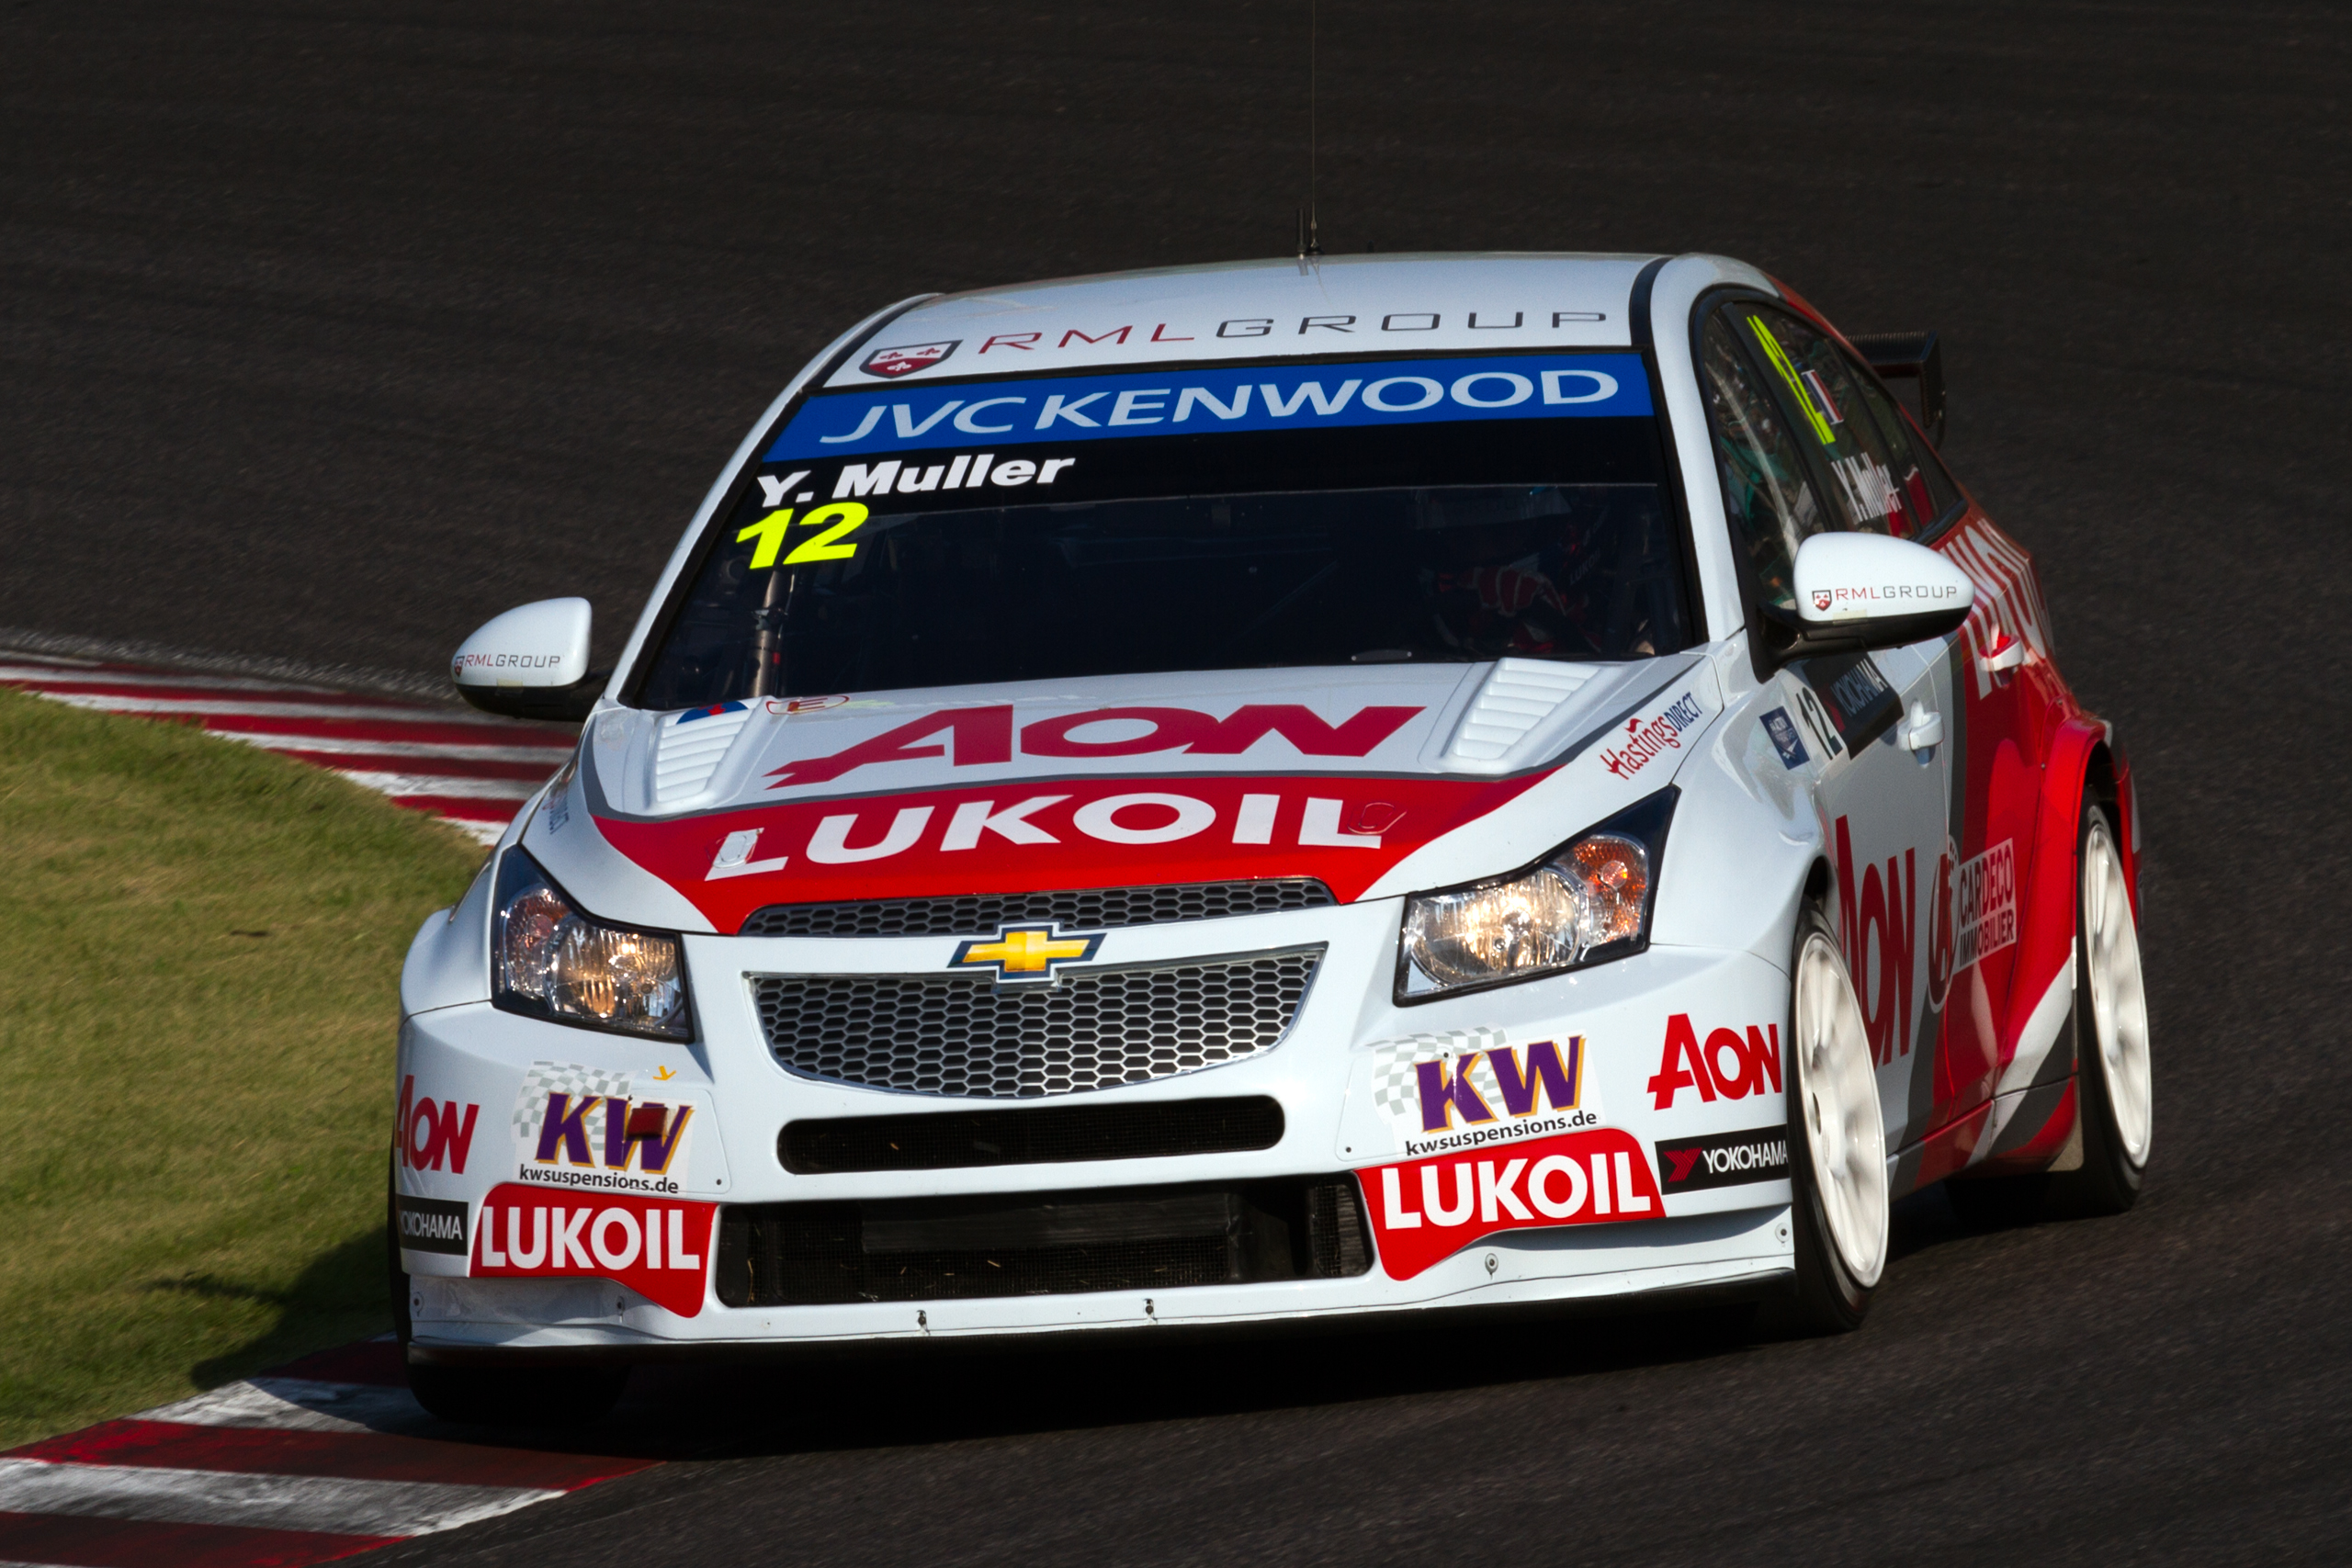 Yvan_Muller_2013_WTCC_Race_of_Japan_(Qualify_1)